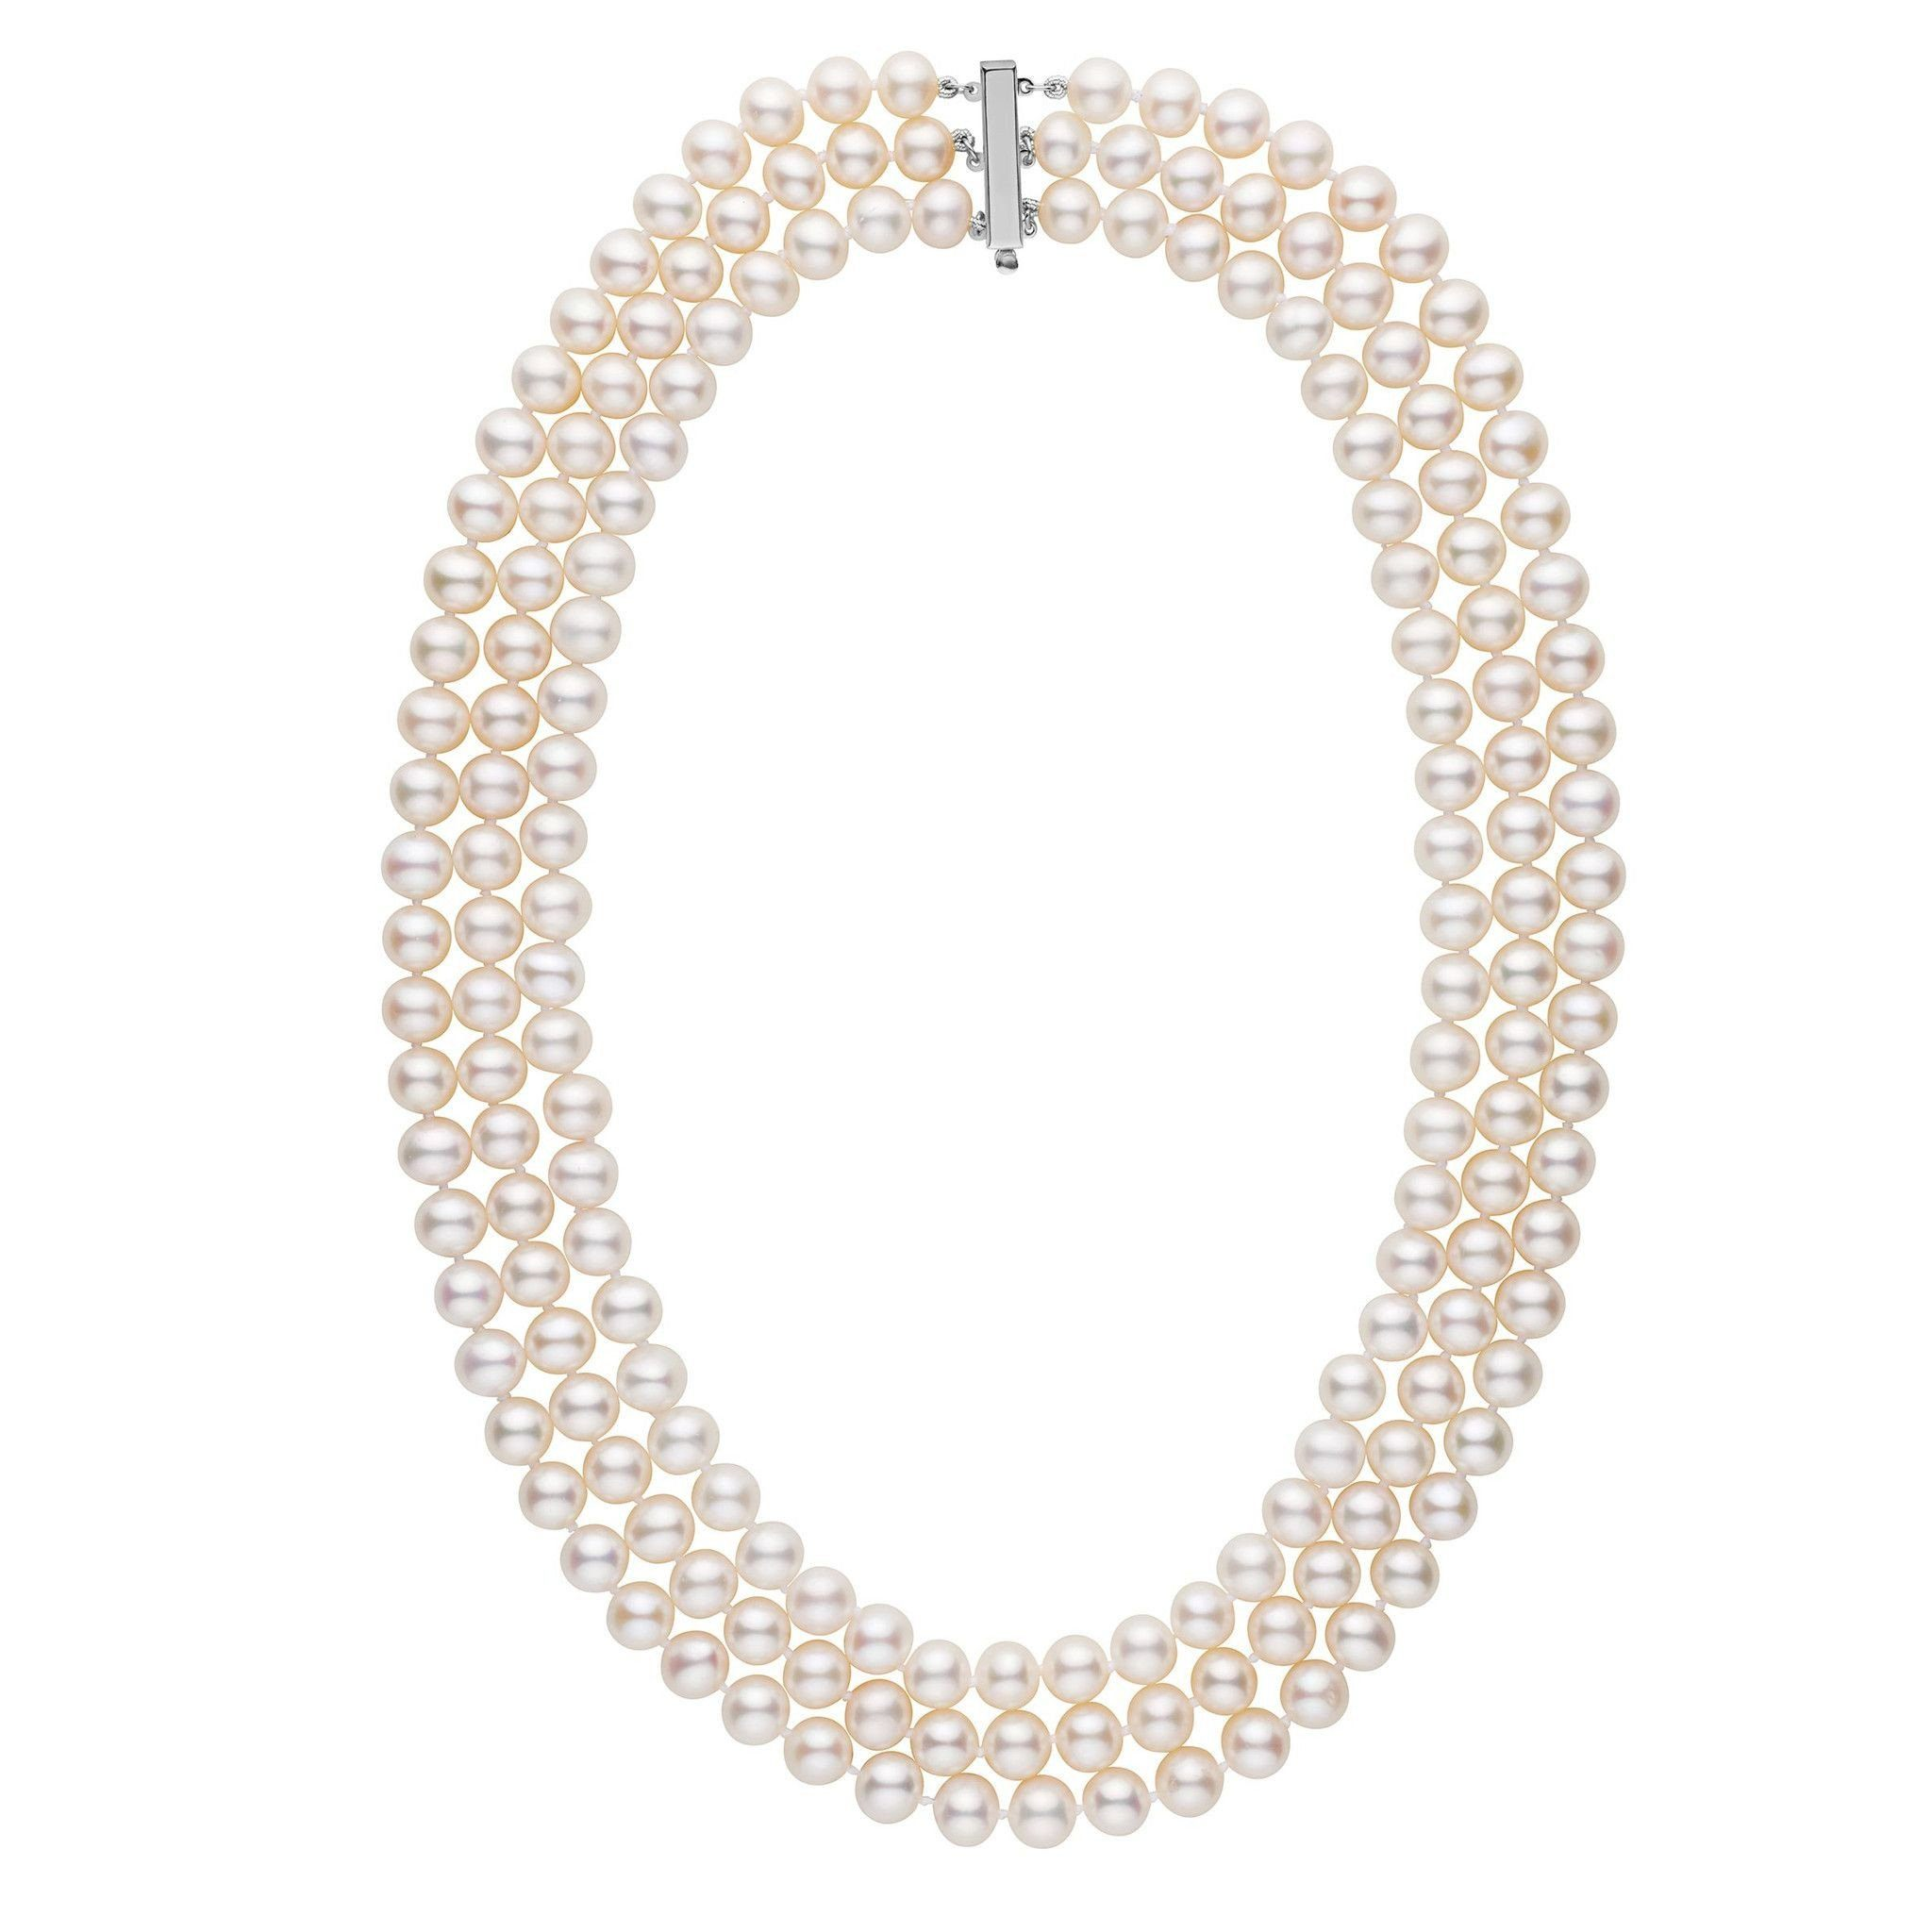 7.5-8.0 mm Triple-Strand AA+ White Freshwater Cultured Pearl Necklace